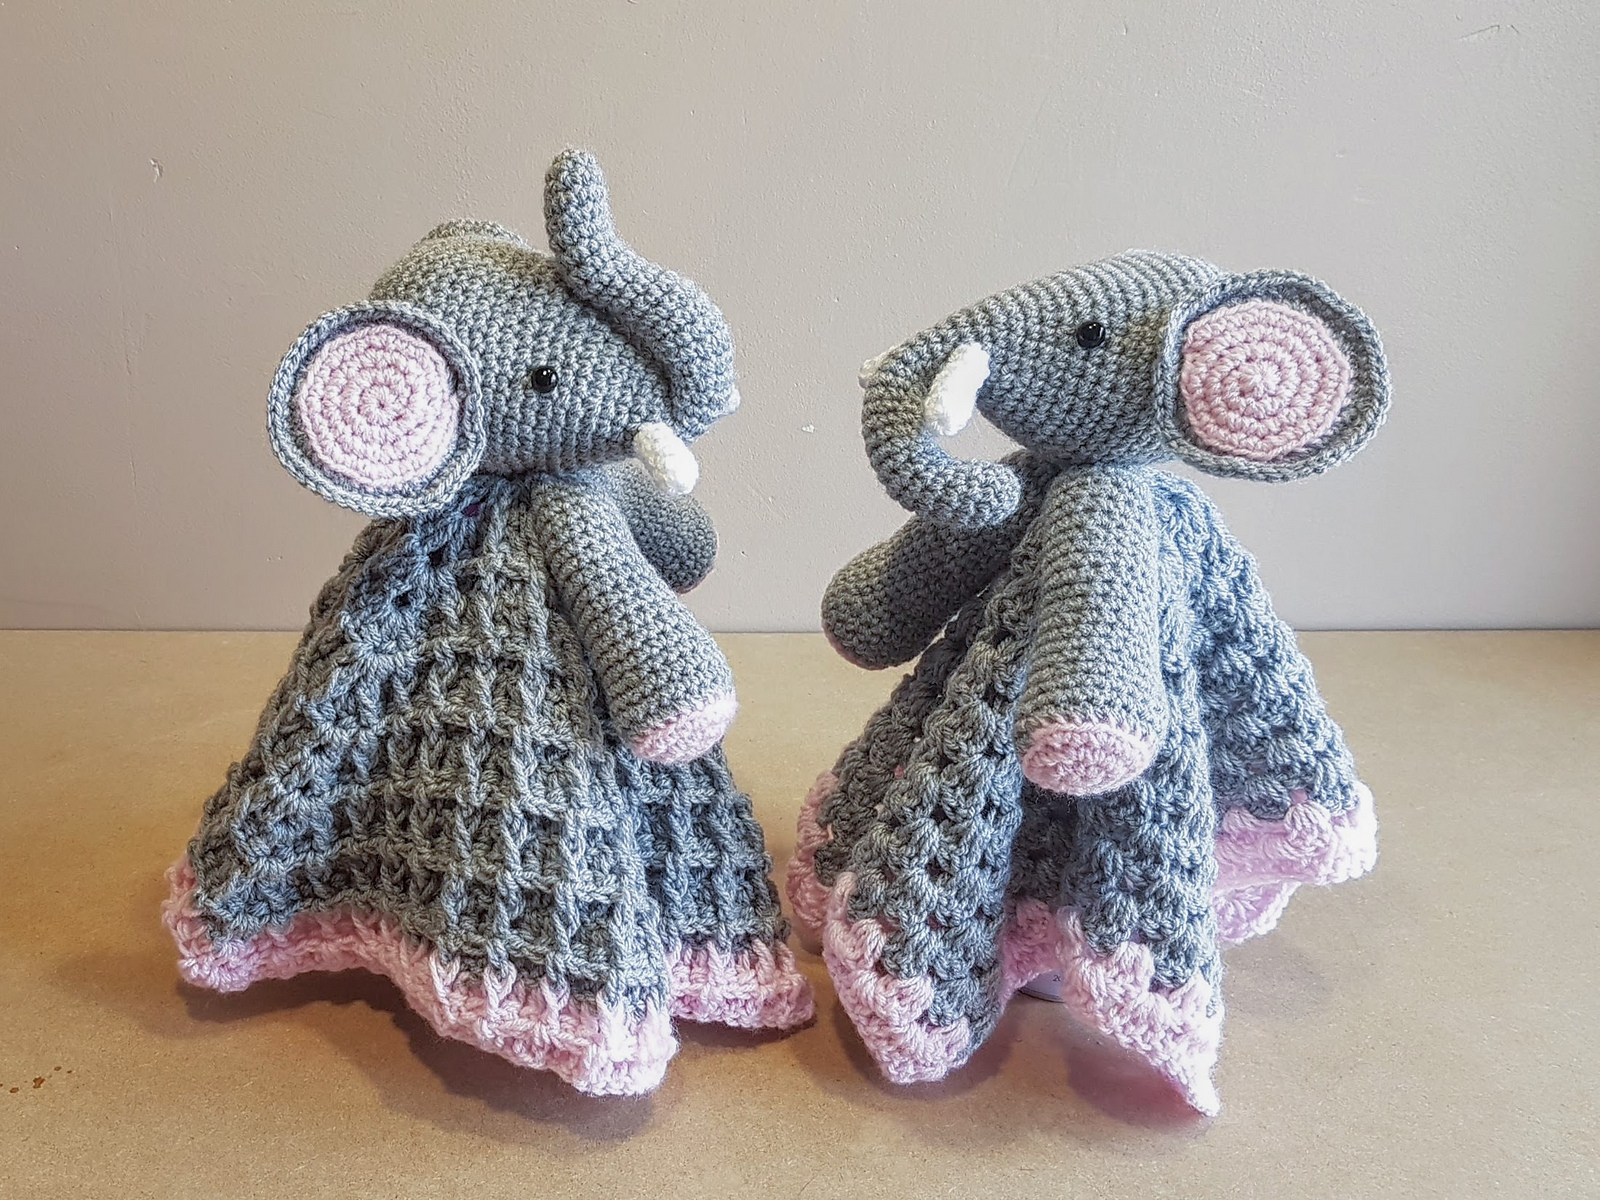 Adorable Elephant Lovey Crochet Pattern To Crochet A Forever Friend For Your Sweet Baby